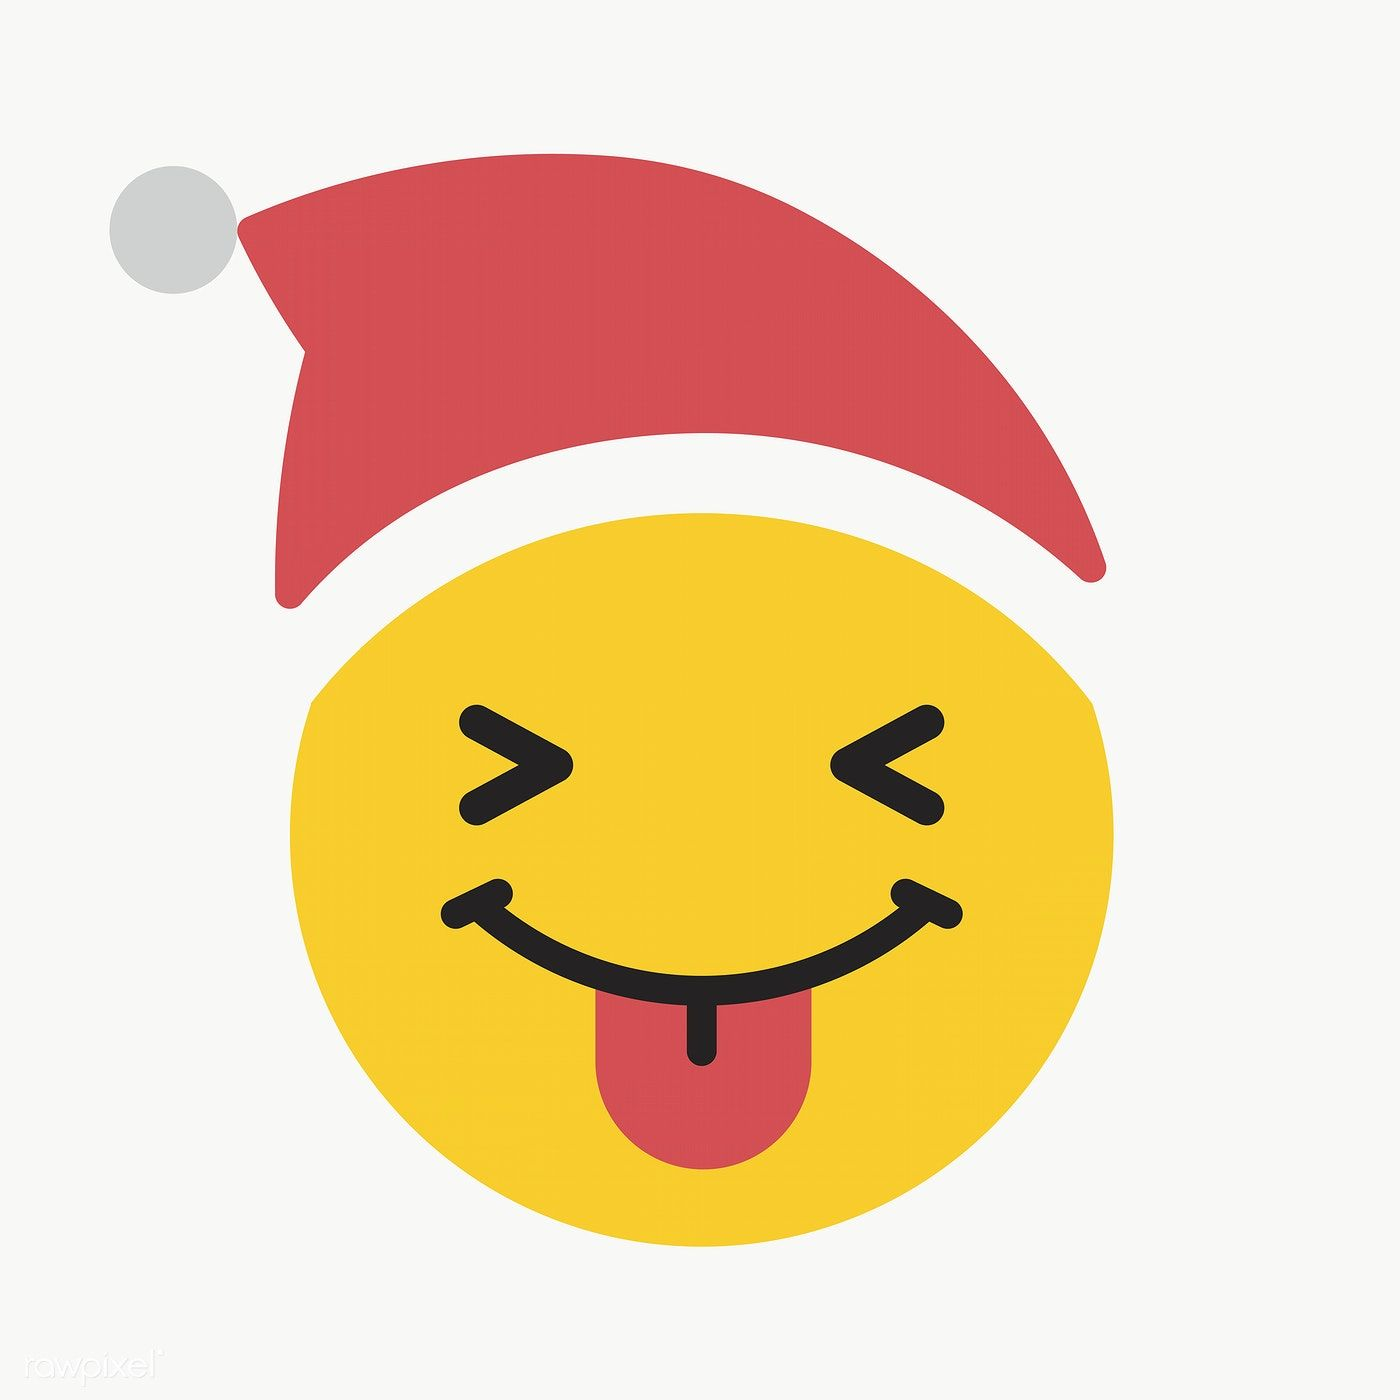 Download Premium Png Of Round Yellow Santa Face With Tongue Emoticon On Santa Face Emoticon Digital Illustration